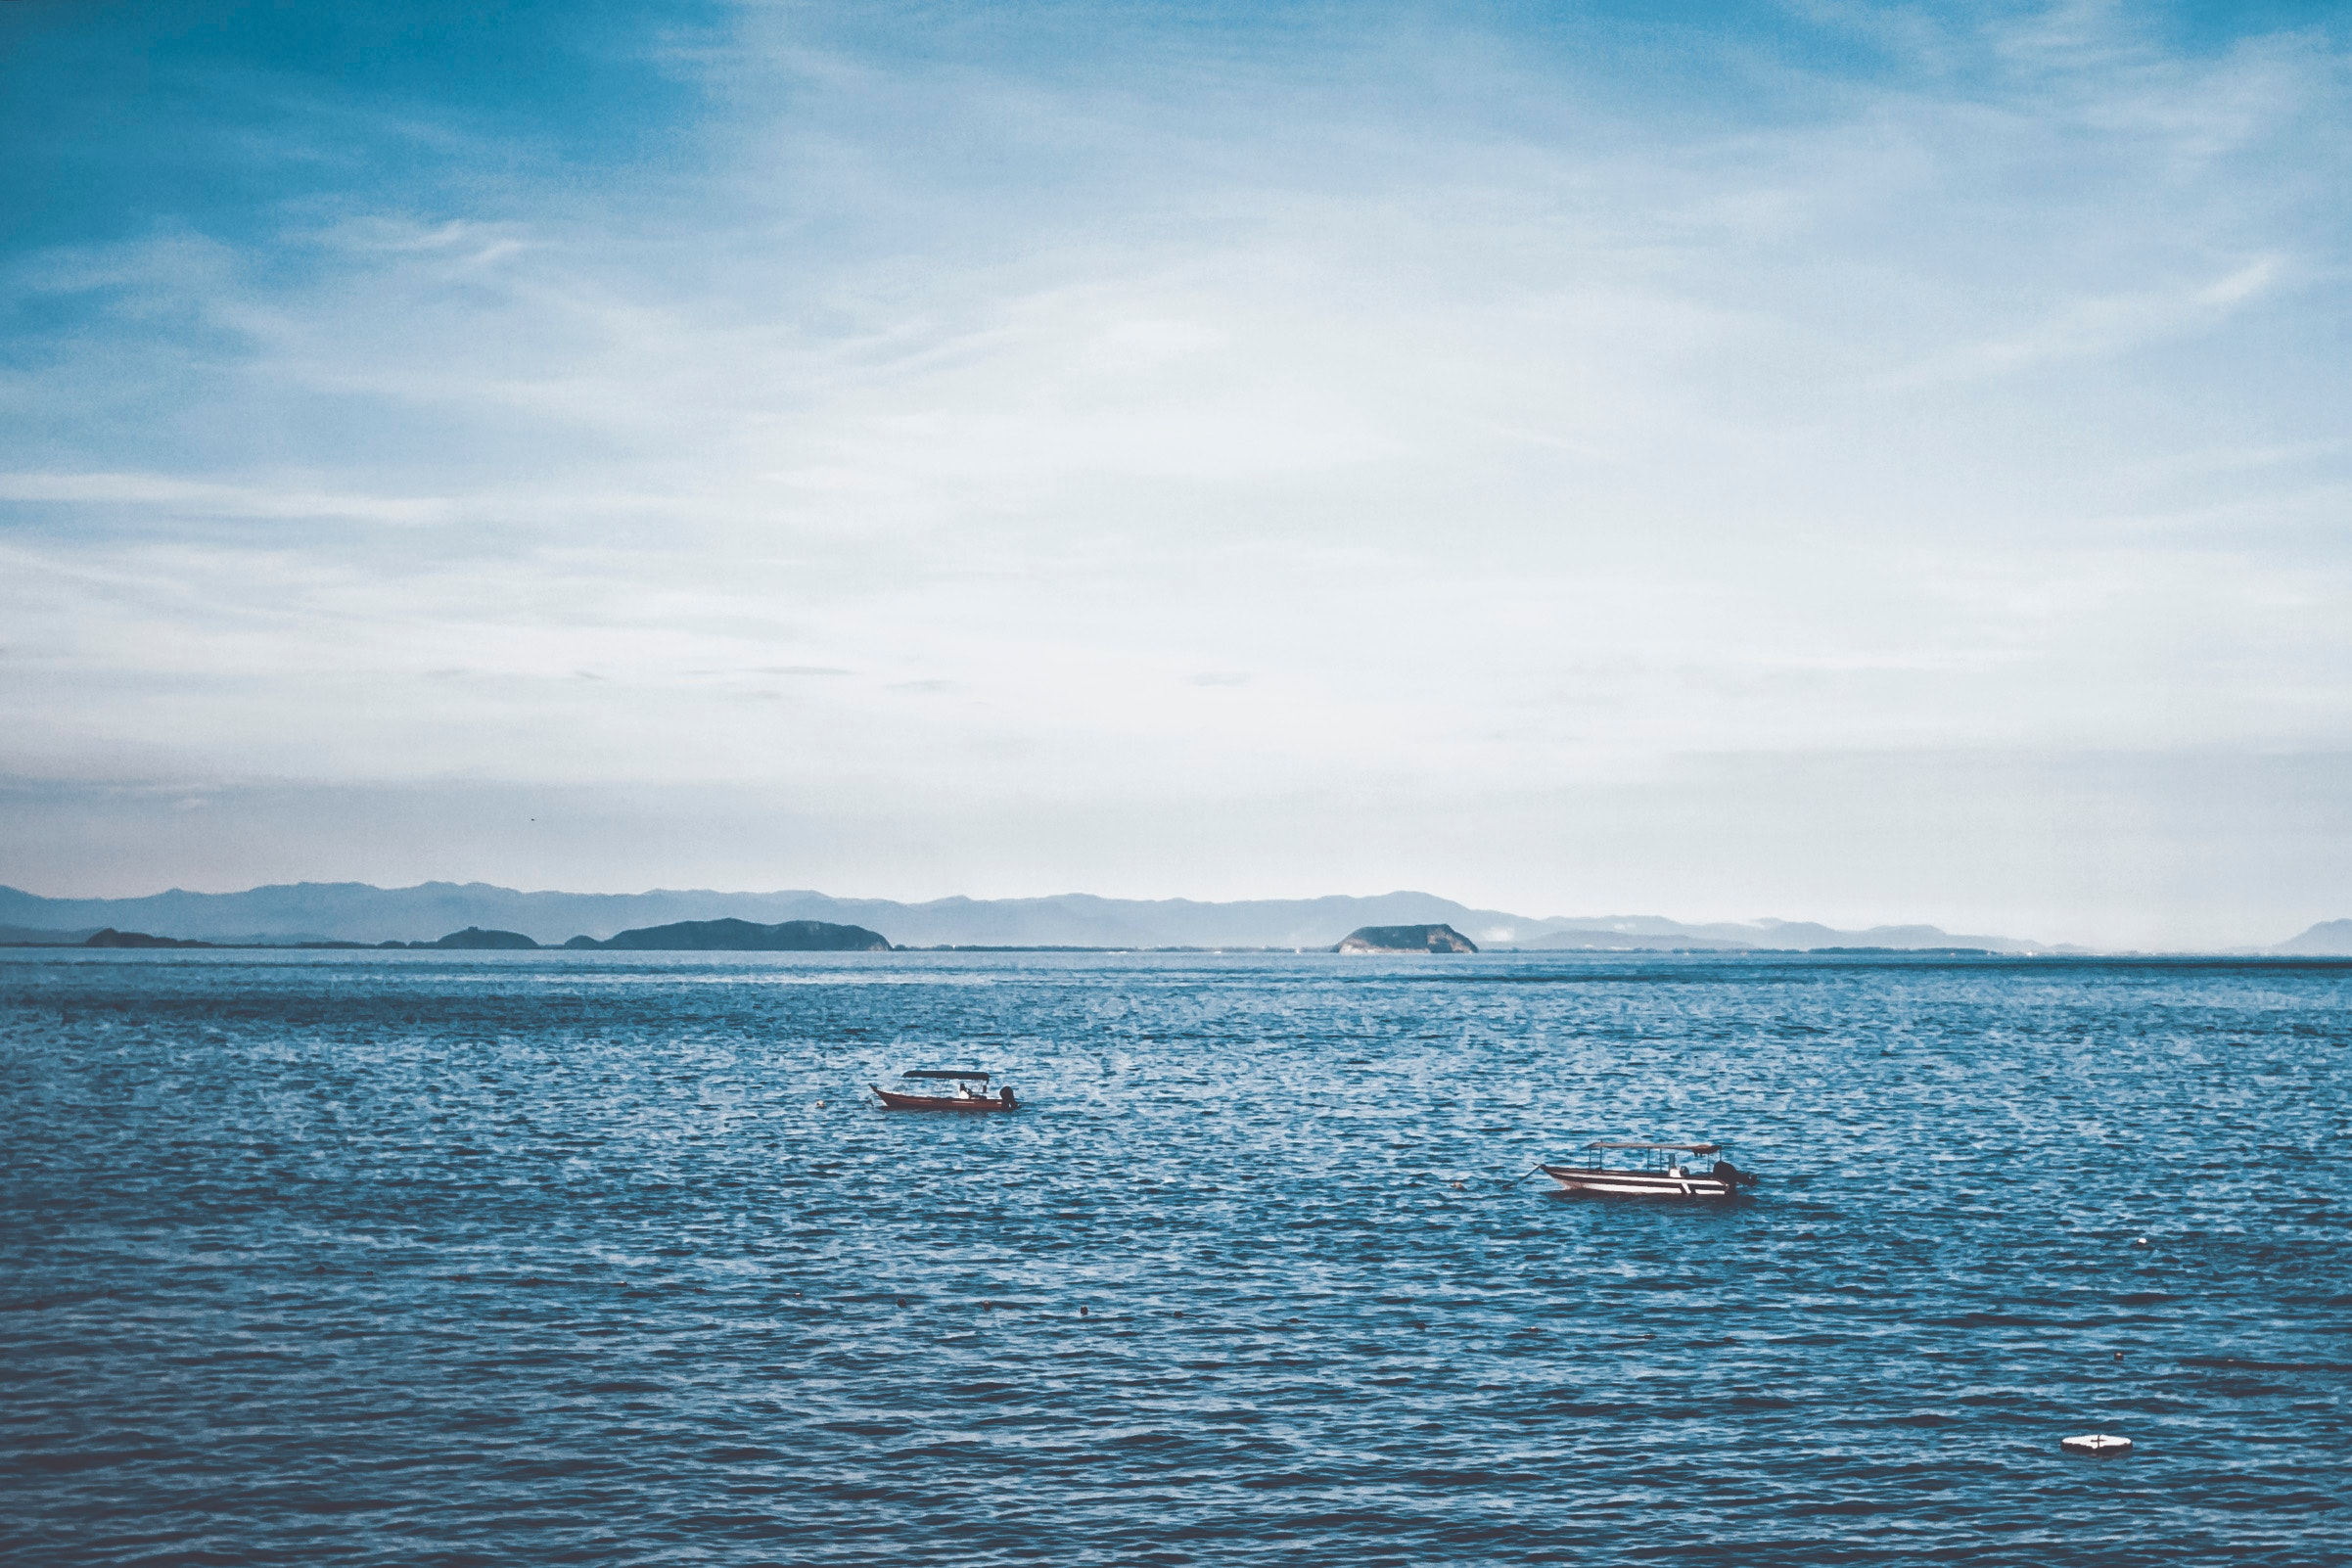 Two Boats in Ocean, Blue, Sea, Water, Transportation system, HQ Photo